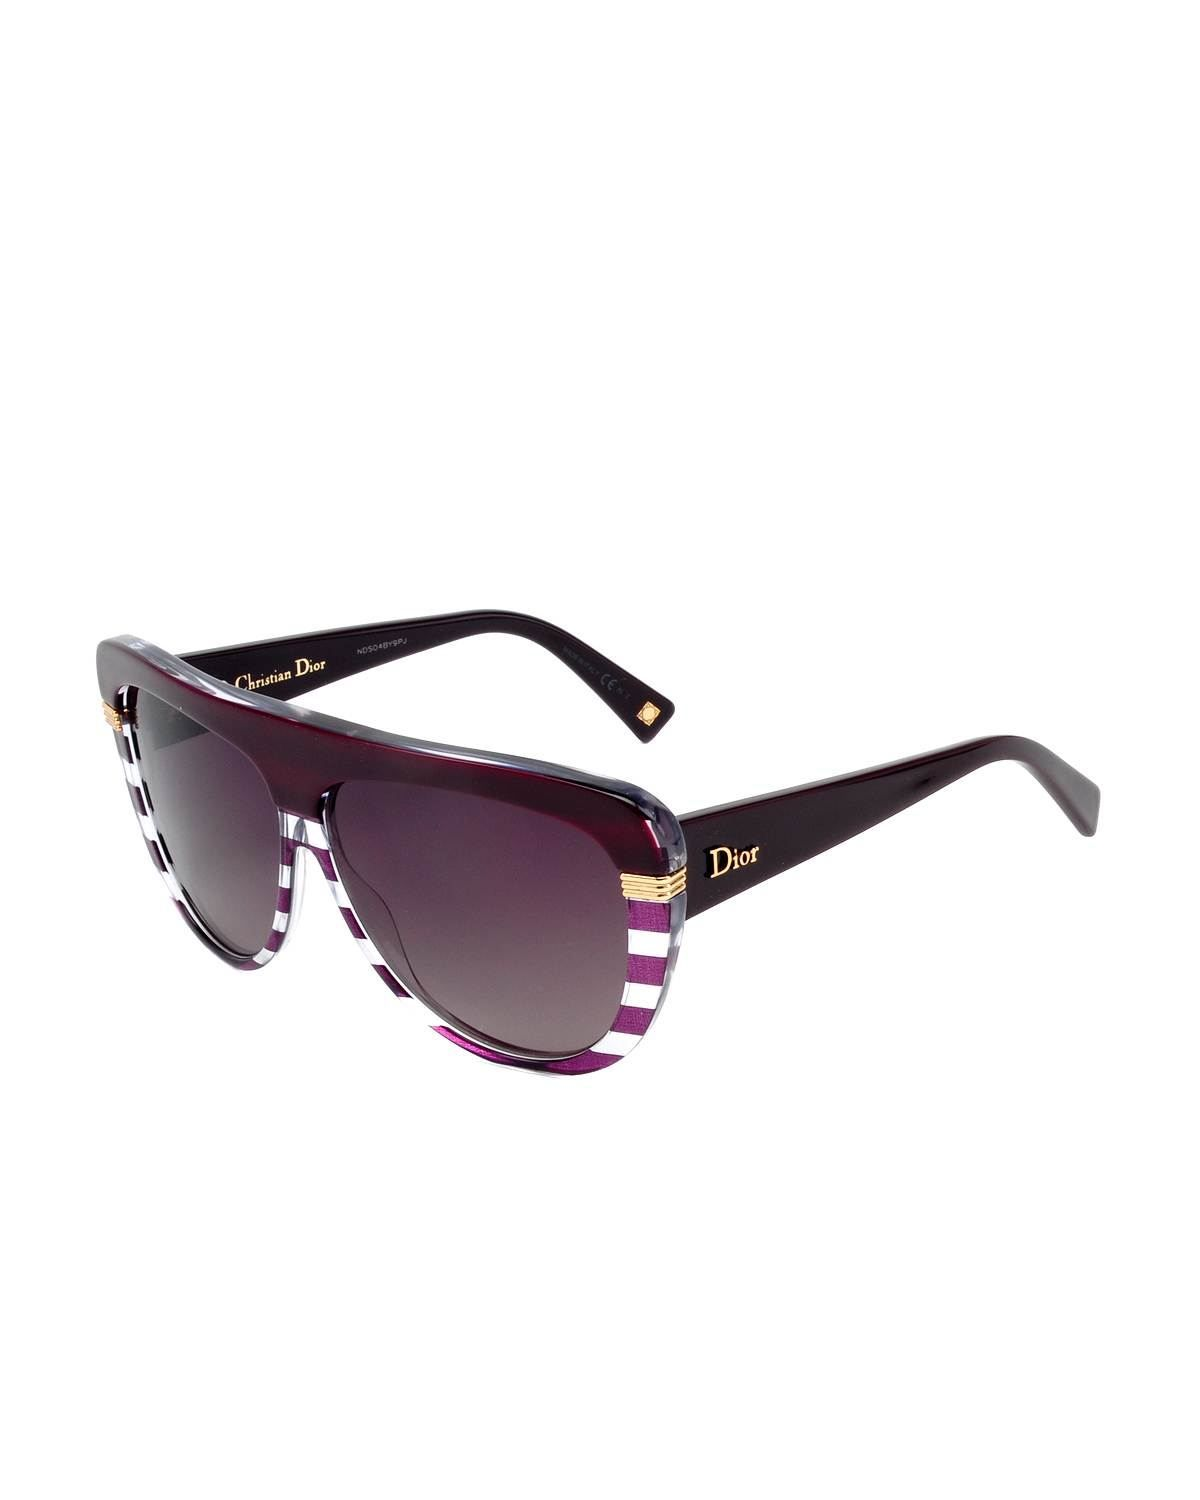 Christian Dior Sunglasses for $139 at Modnique. Start shopping now and save 50%. Flexible return policy, 24/7 client support, authenticity guaranteed